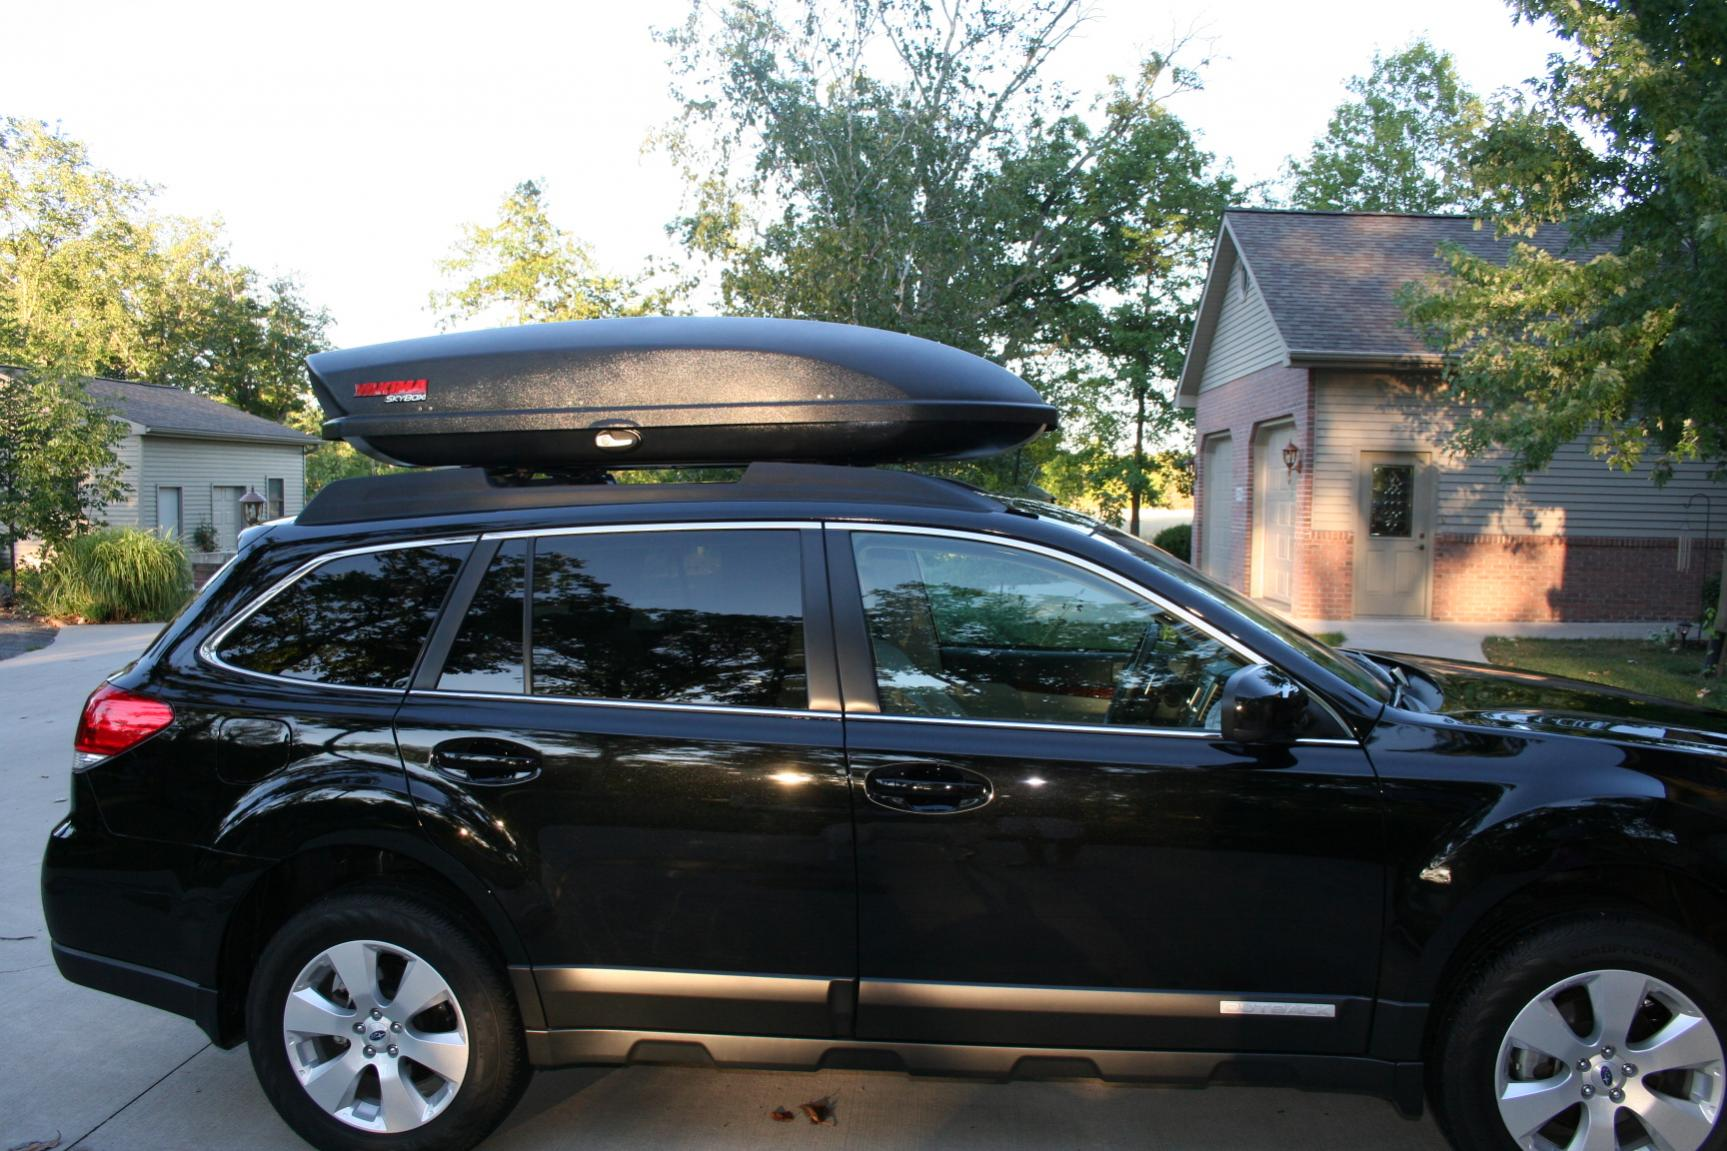 Yakima thule roof cargo box thread page 25 subaru outback click image for larger version name img1503g views 8996 size 2865 buckeye outback is offline vanachro Images